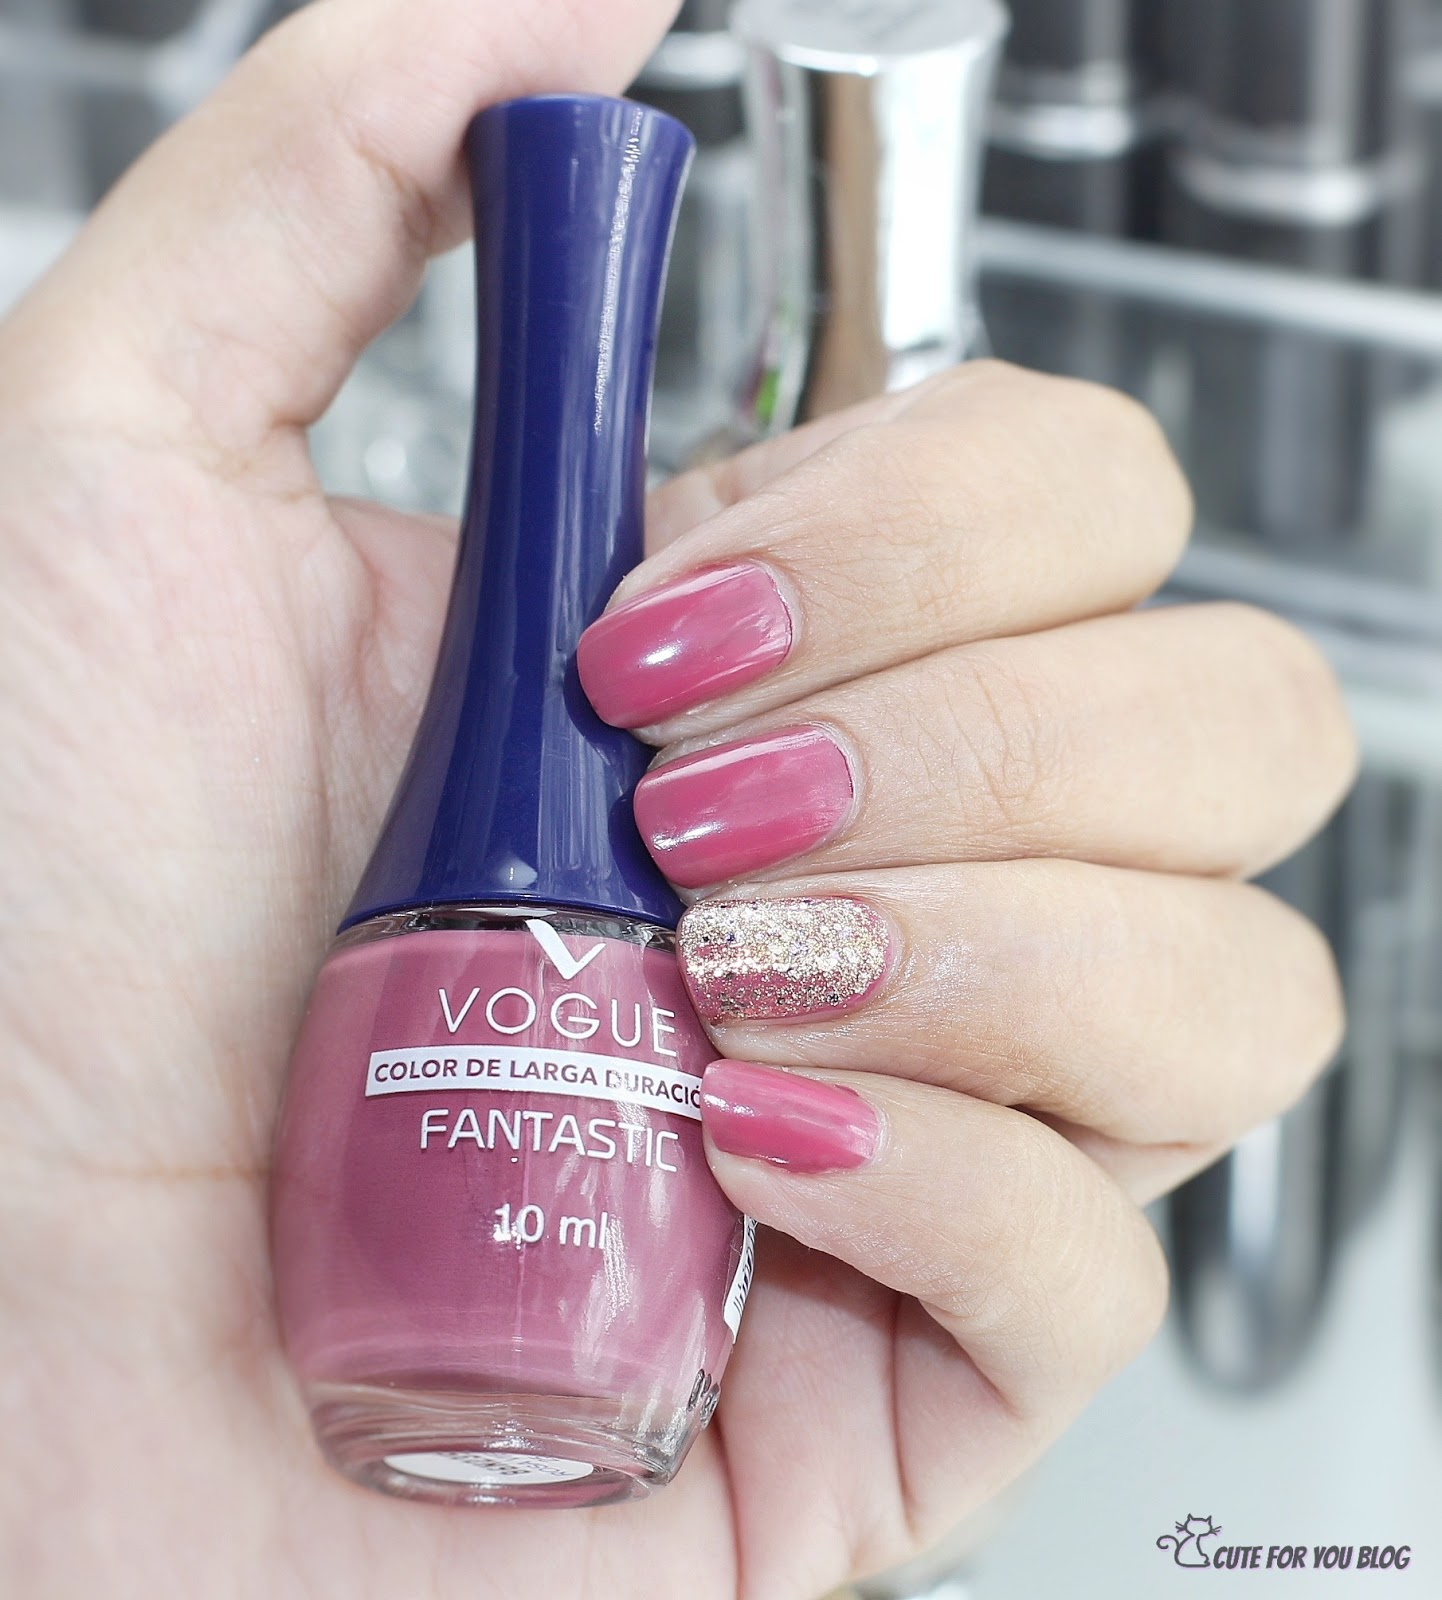 vogue cosmetics, uñas, esmaltes vogue, vogue argentina, bloggers argentina, cute for you, karolina luke, nails, nail polish, vogue fantastic esmalte, 25 rosa viejo vogue, vogue uñas